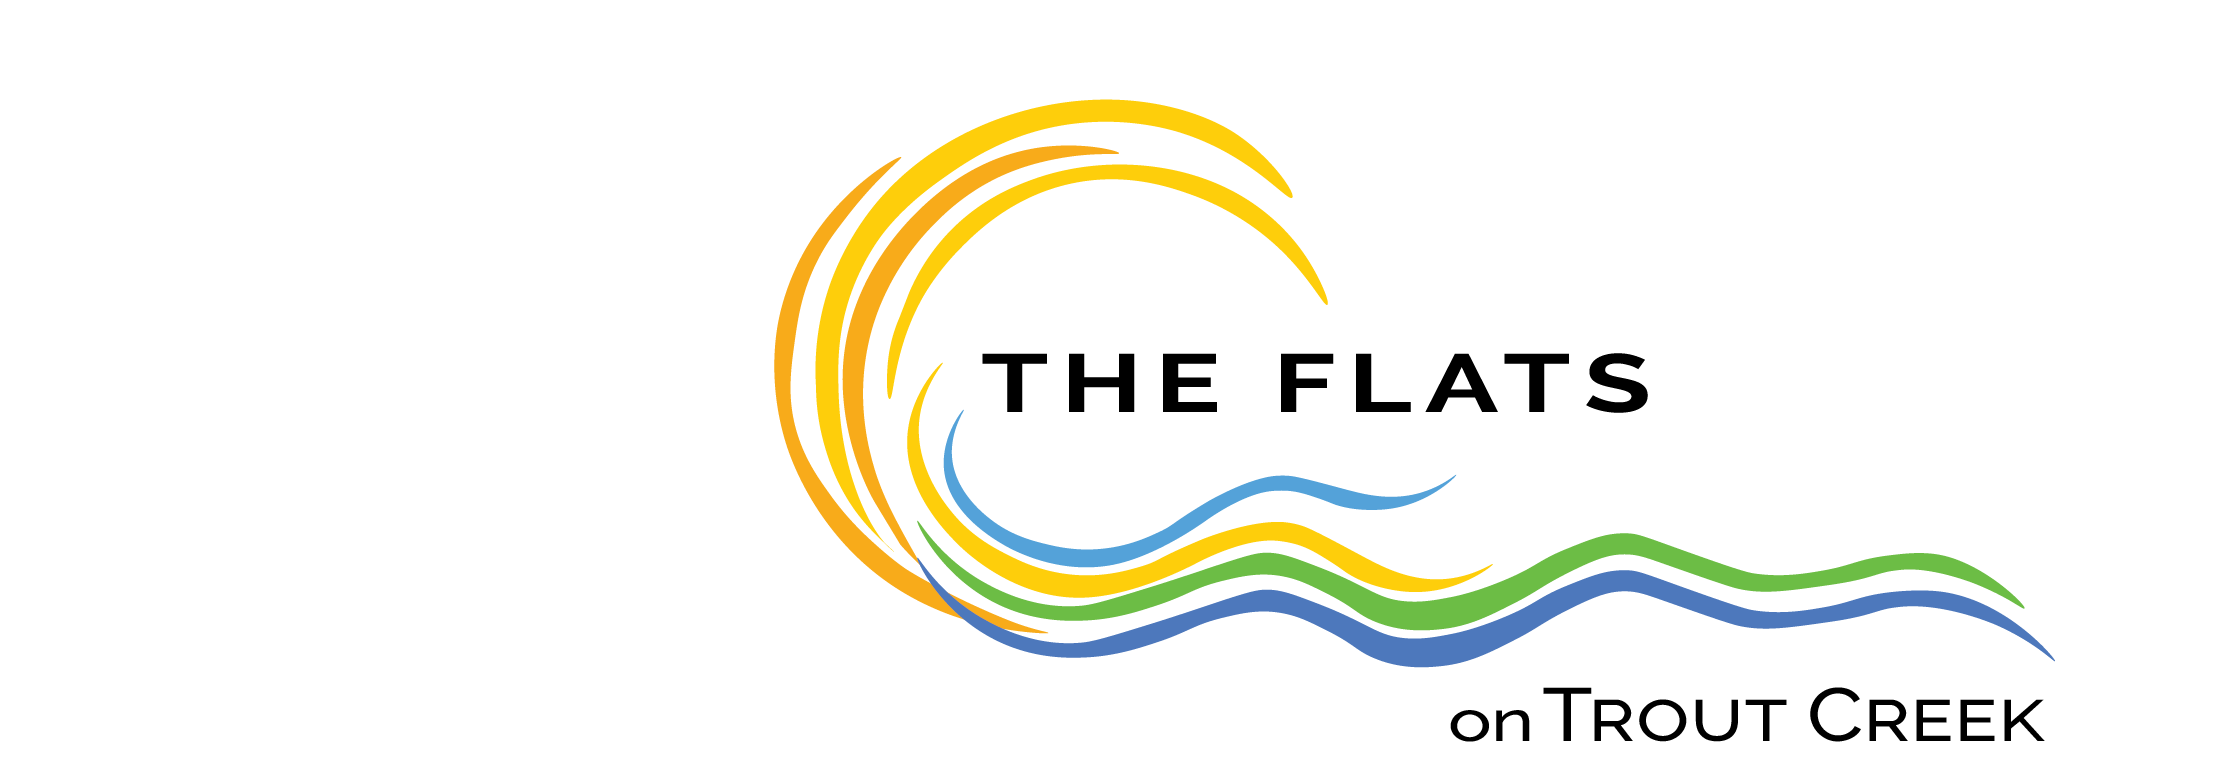 The Flats on Trout logo AAA.png